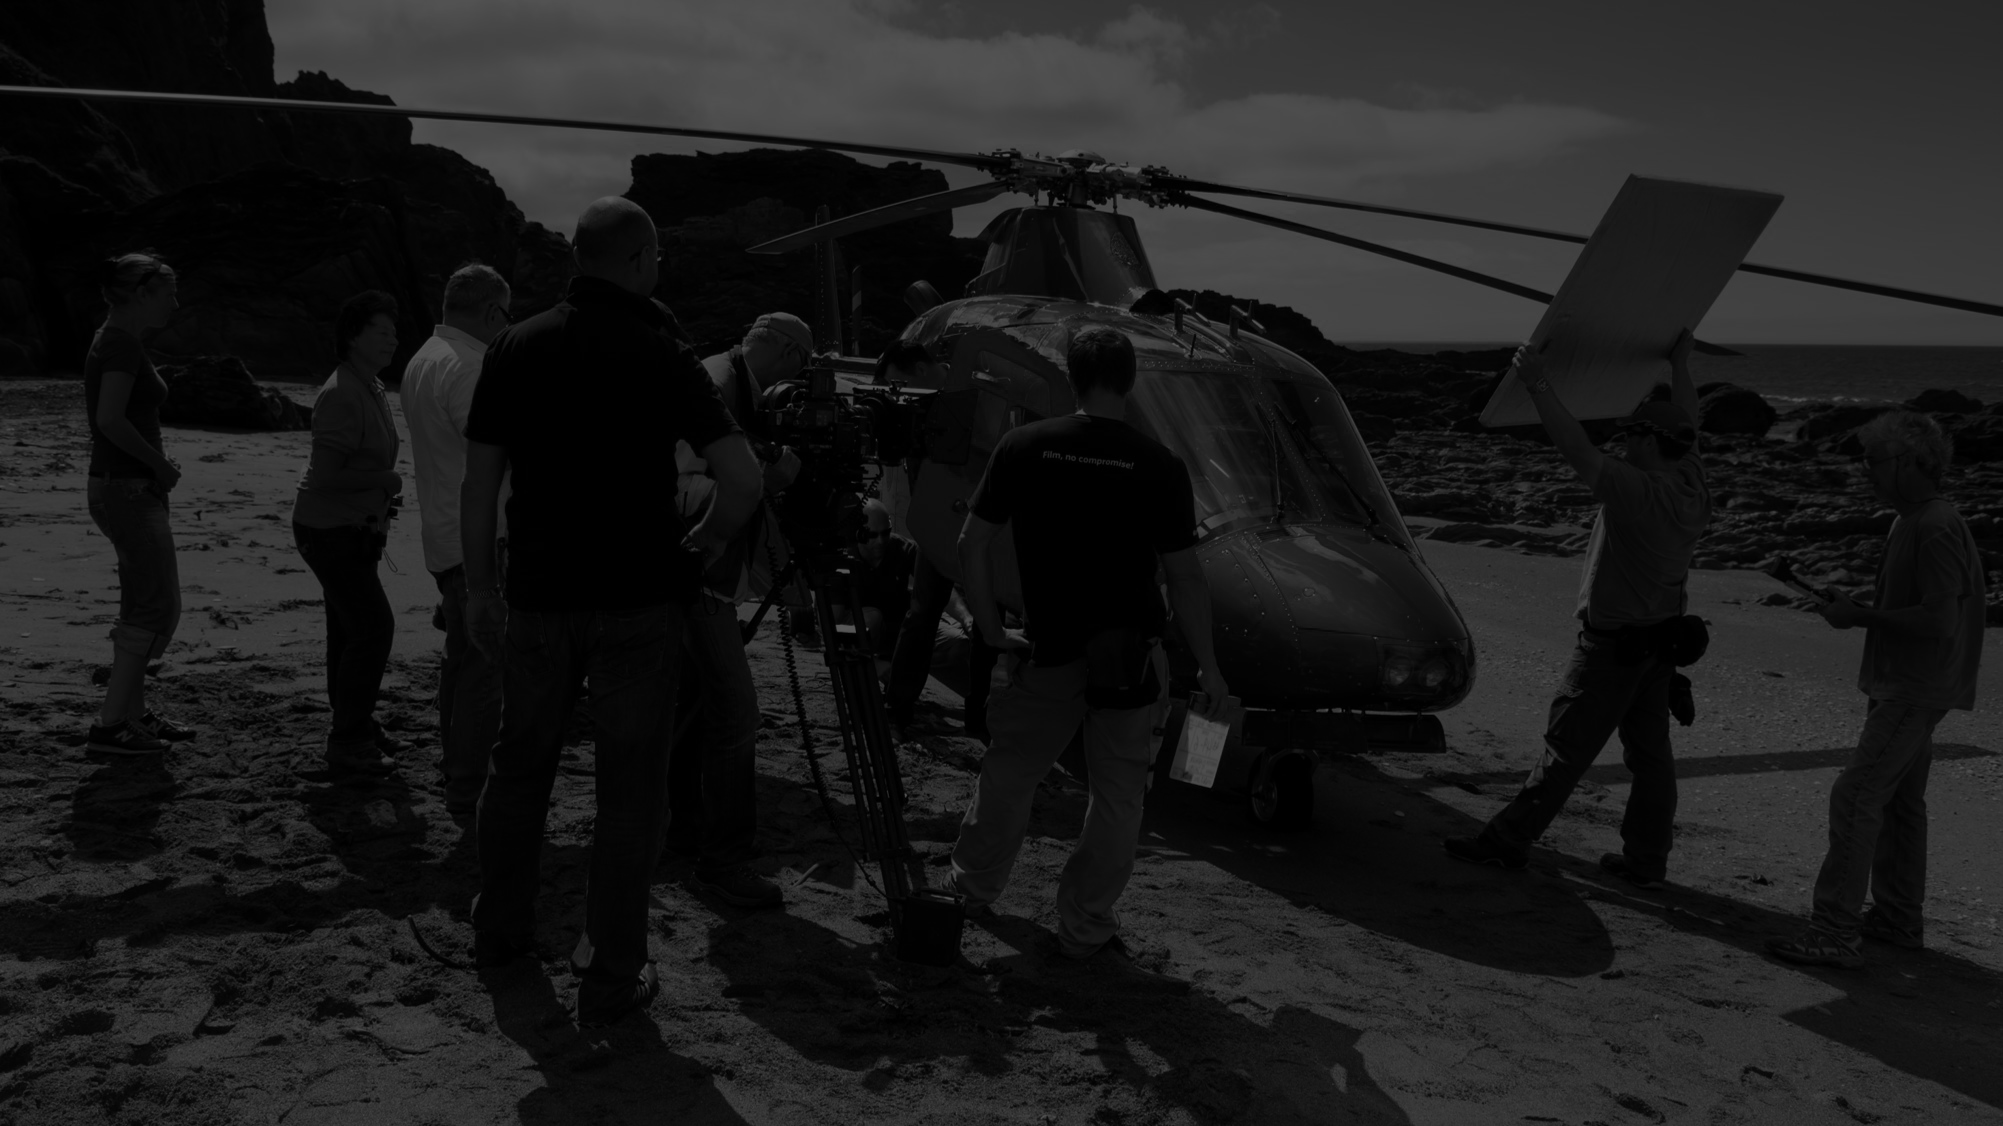 photography team photographing a helicopter